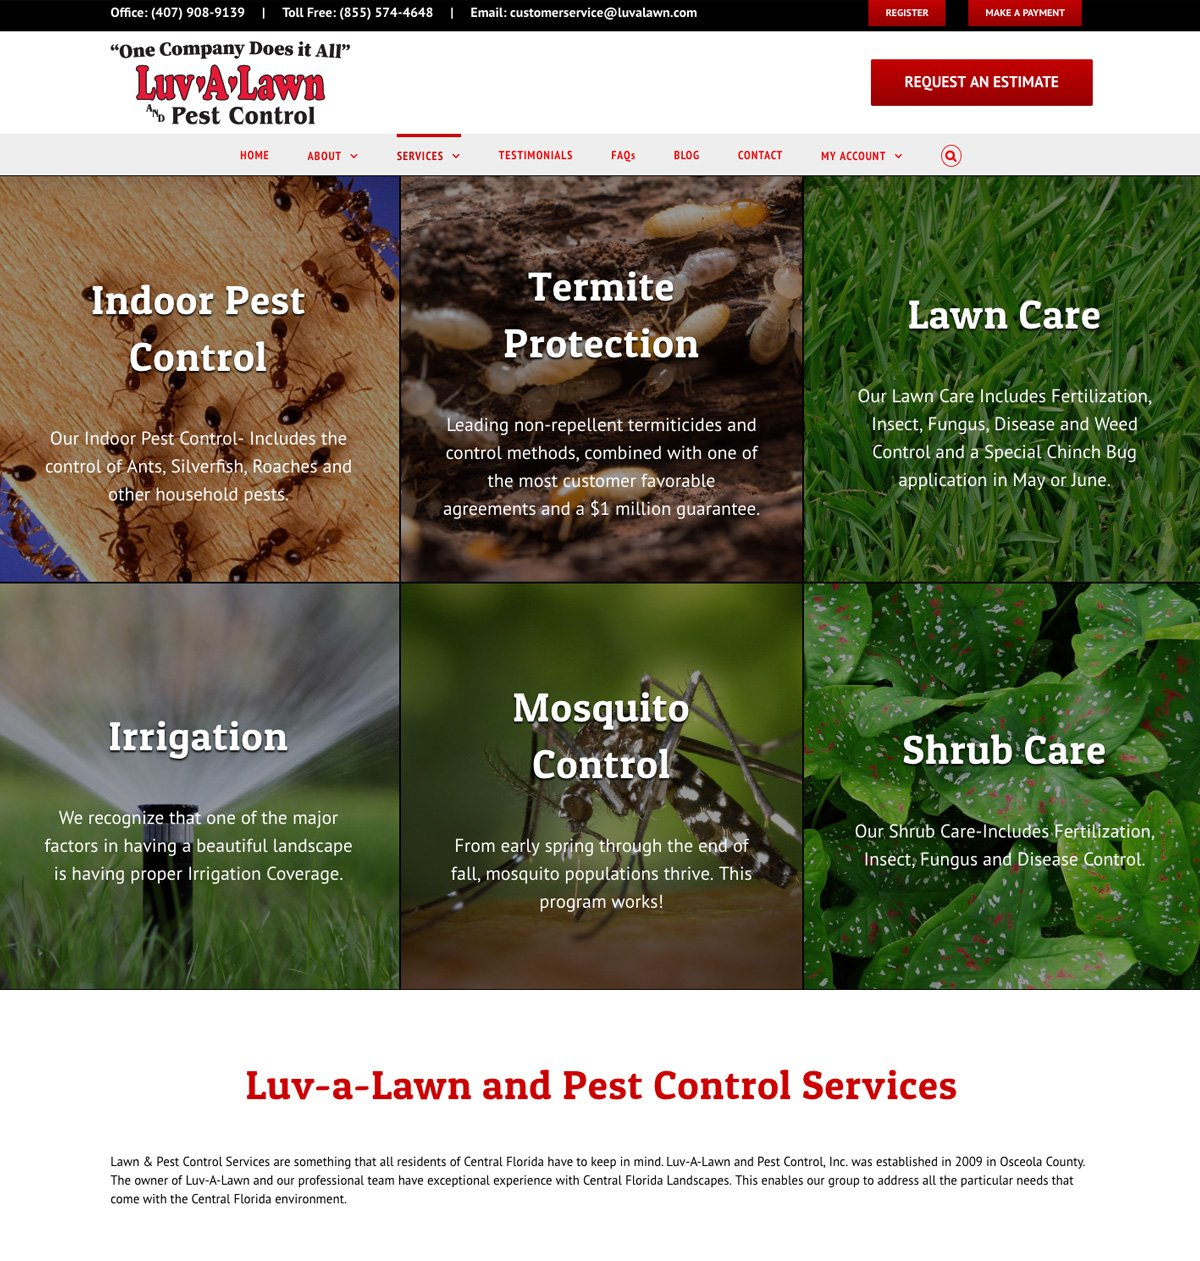 Pest Control Company Website Design